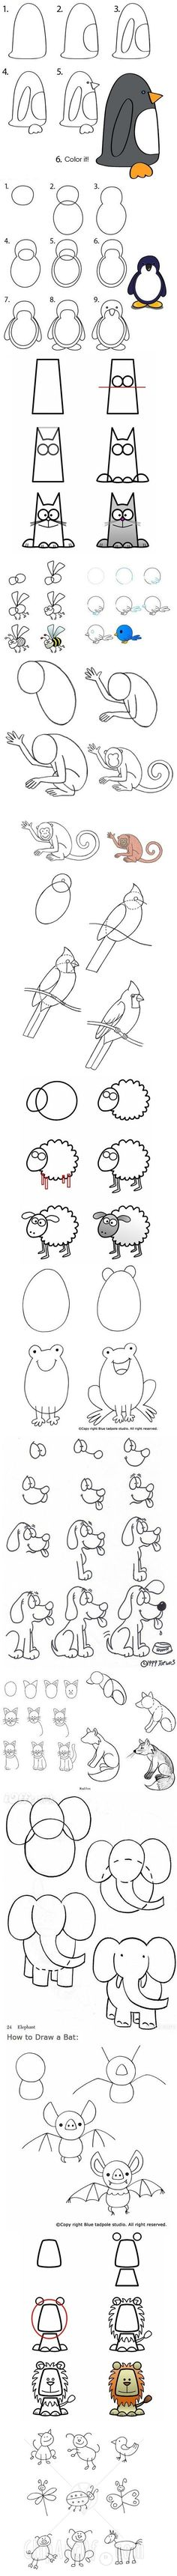 Step by step drawings of animals  This comes in handy when you need to draw!!